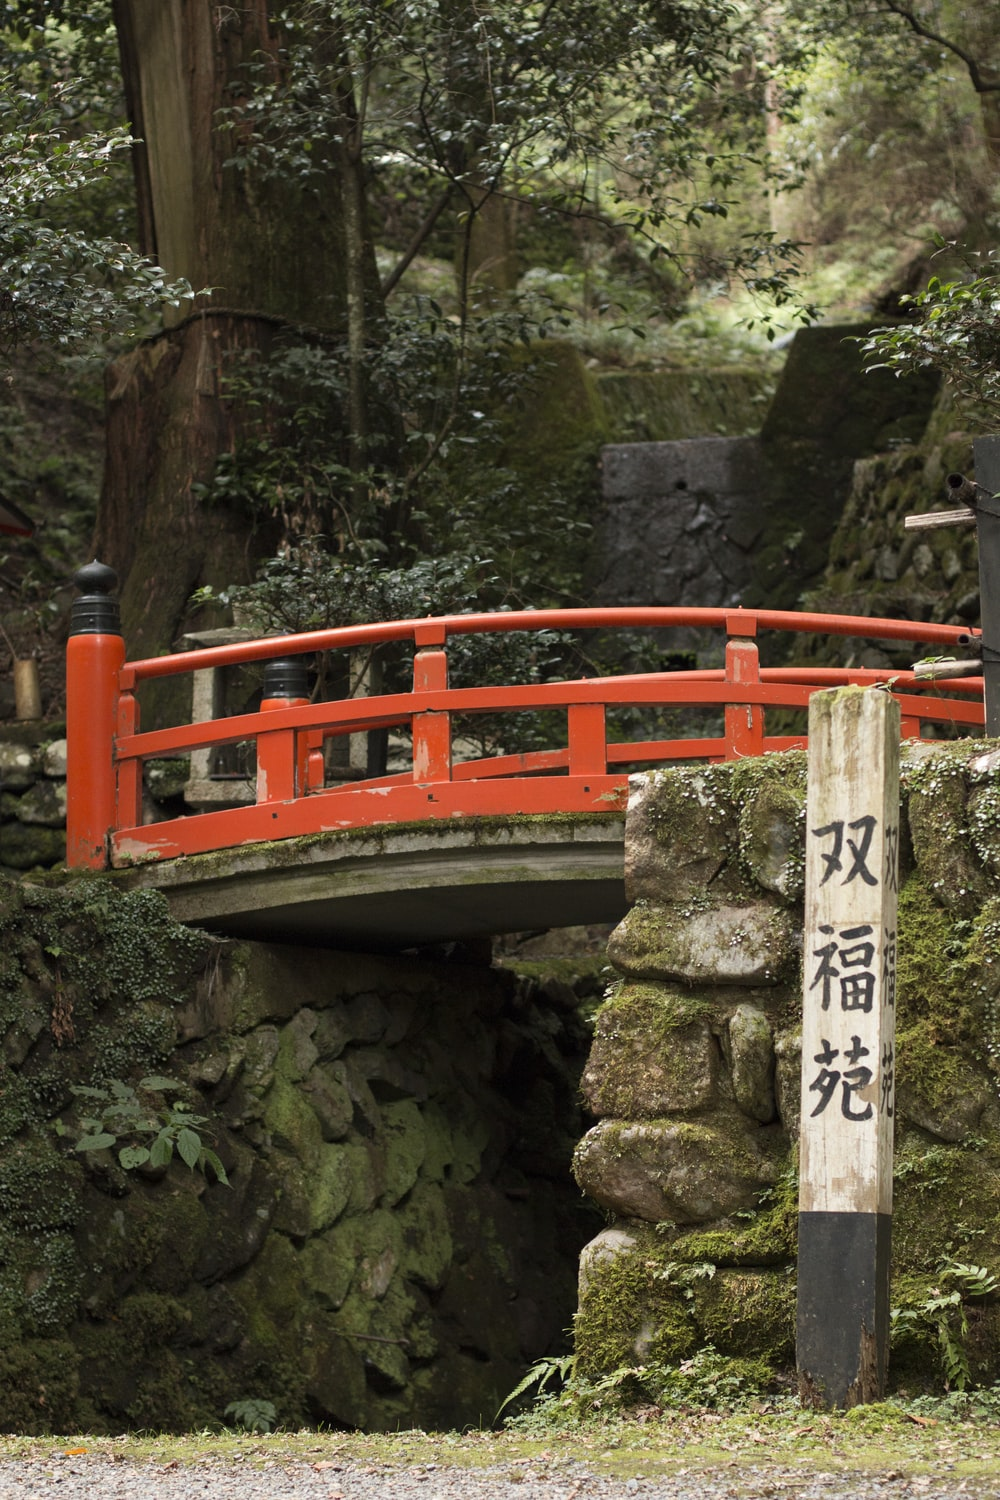 wooden bridge with signage surrounded by green leafed plant